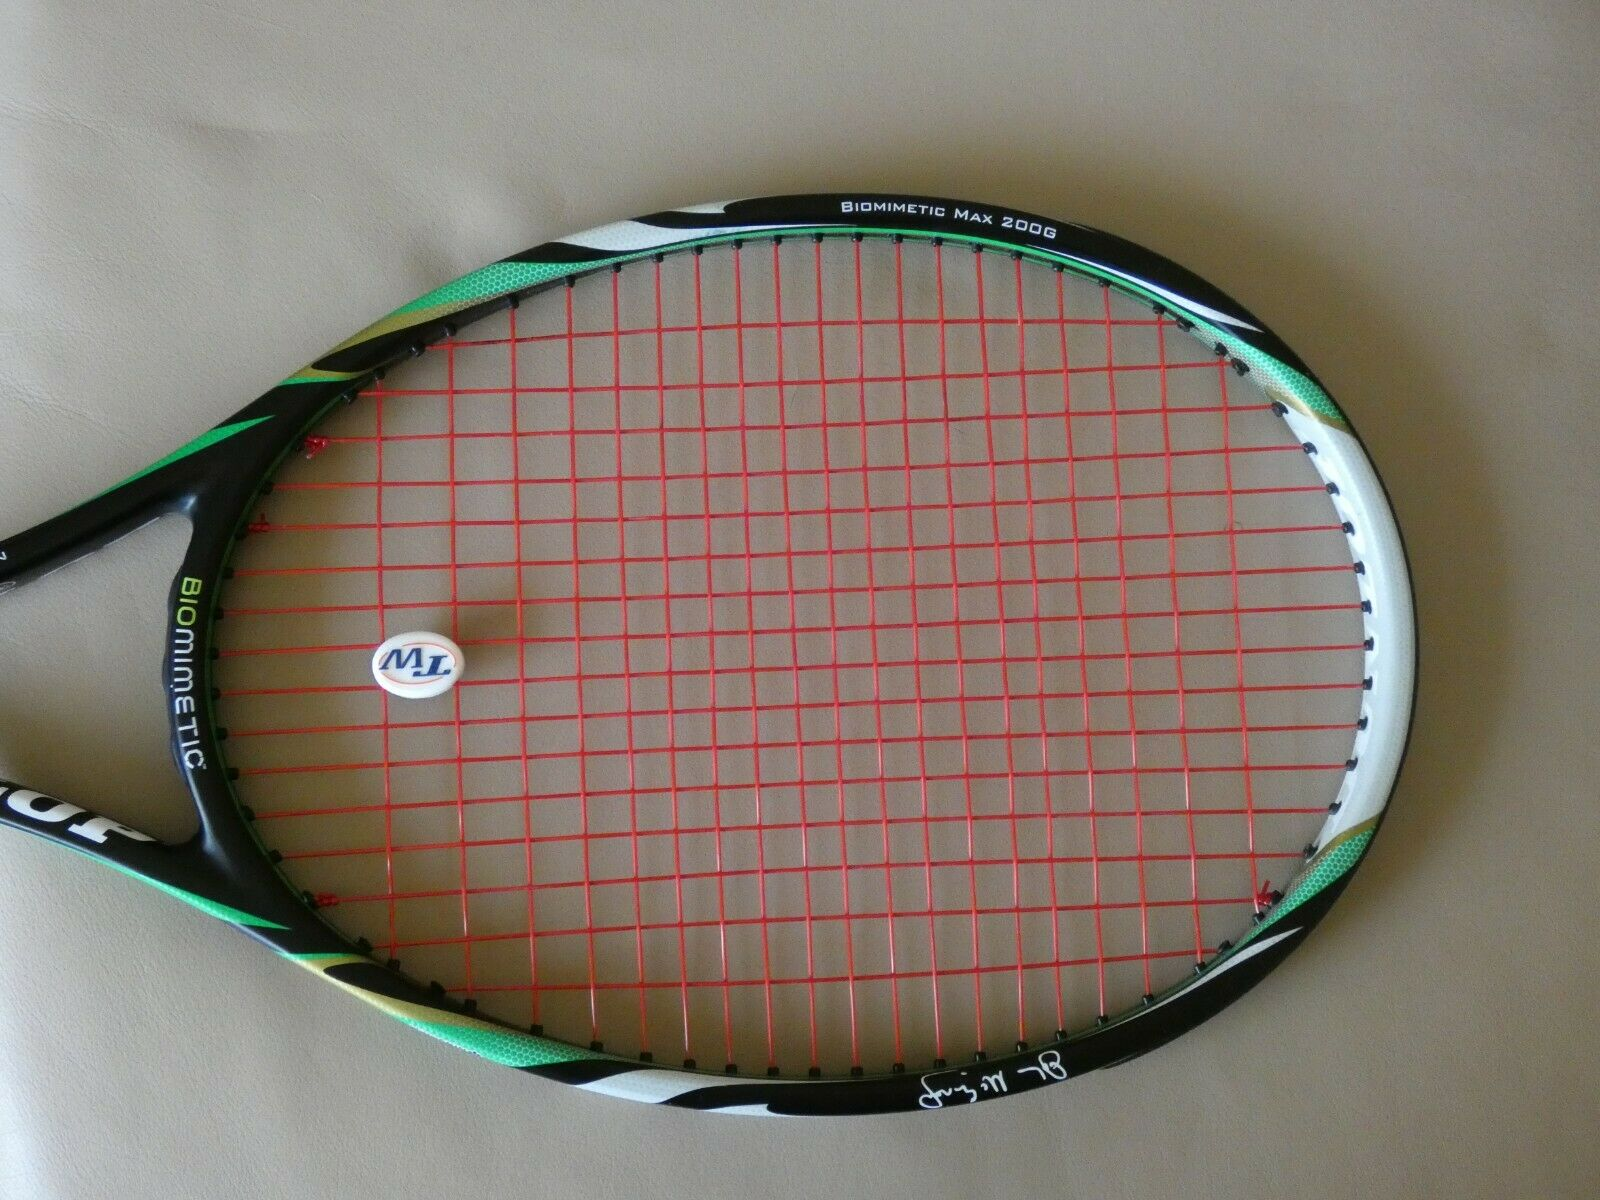 Dunlop Max 200G Biomimetic Tennis Racket McEnroe 4 3 8 Very Good Condition